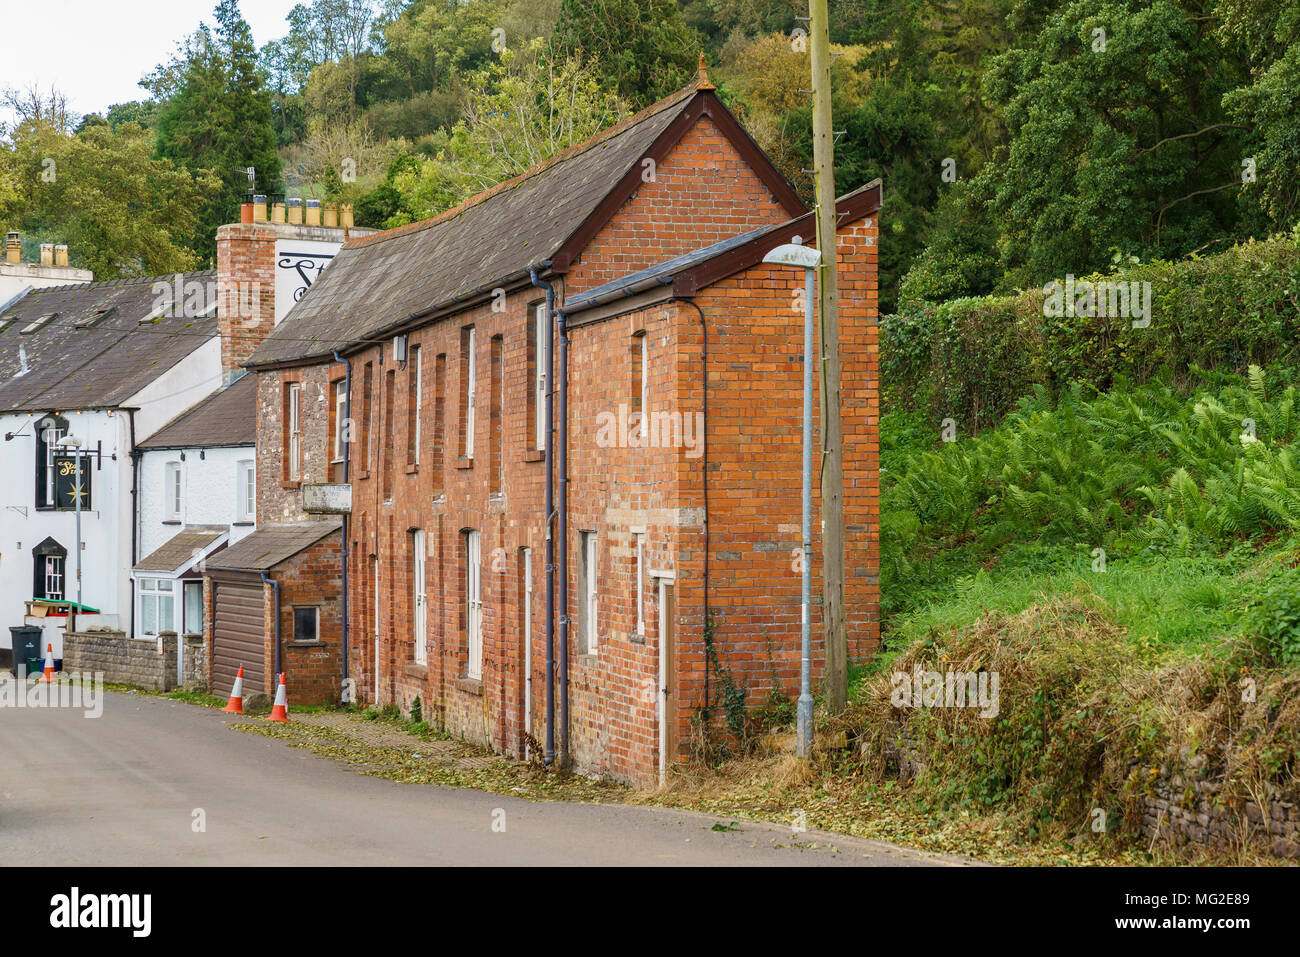 Talybont on Usk, Powys, Wales, UK - October 05, 2017: A narrow house on the main road (B4558) - Stock Image